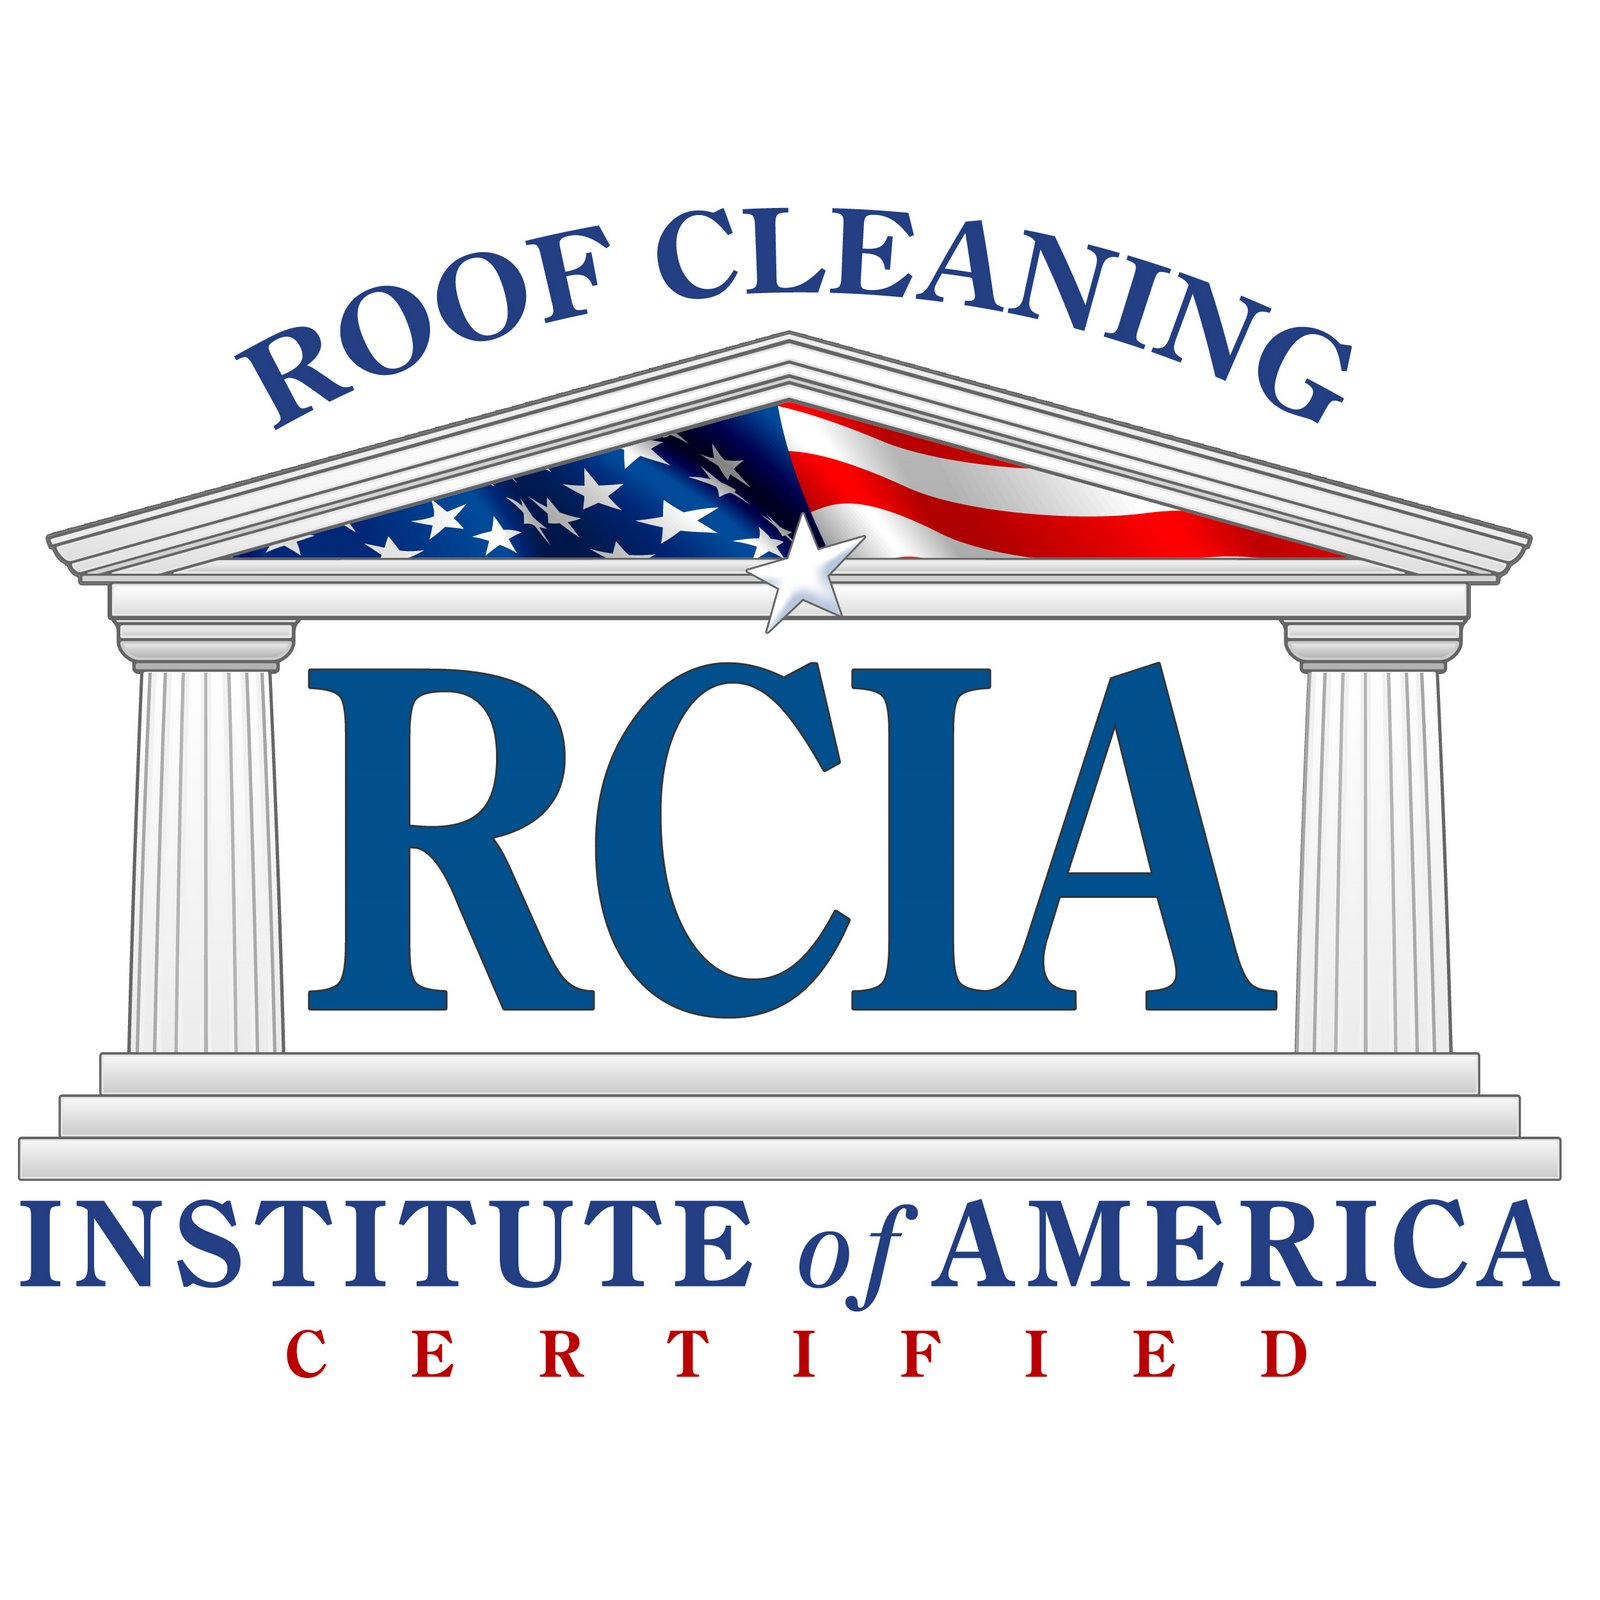 Superior Apple Roof Cleaning Tampa Florida Also Won The Small Business Of The Year  Award From The Chamber Of Commerce Back In 2002, As You Can See Below.